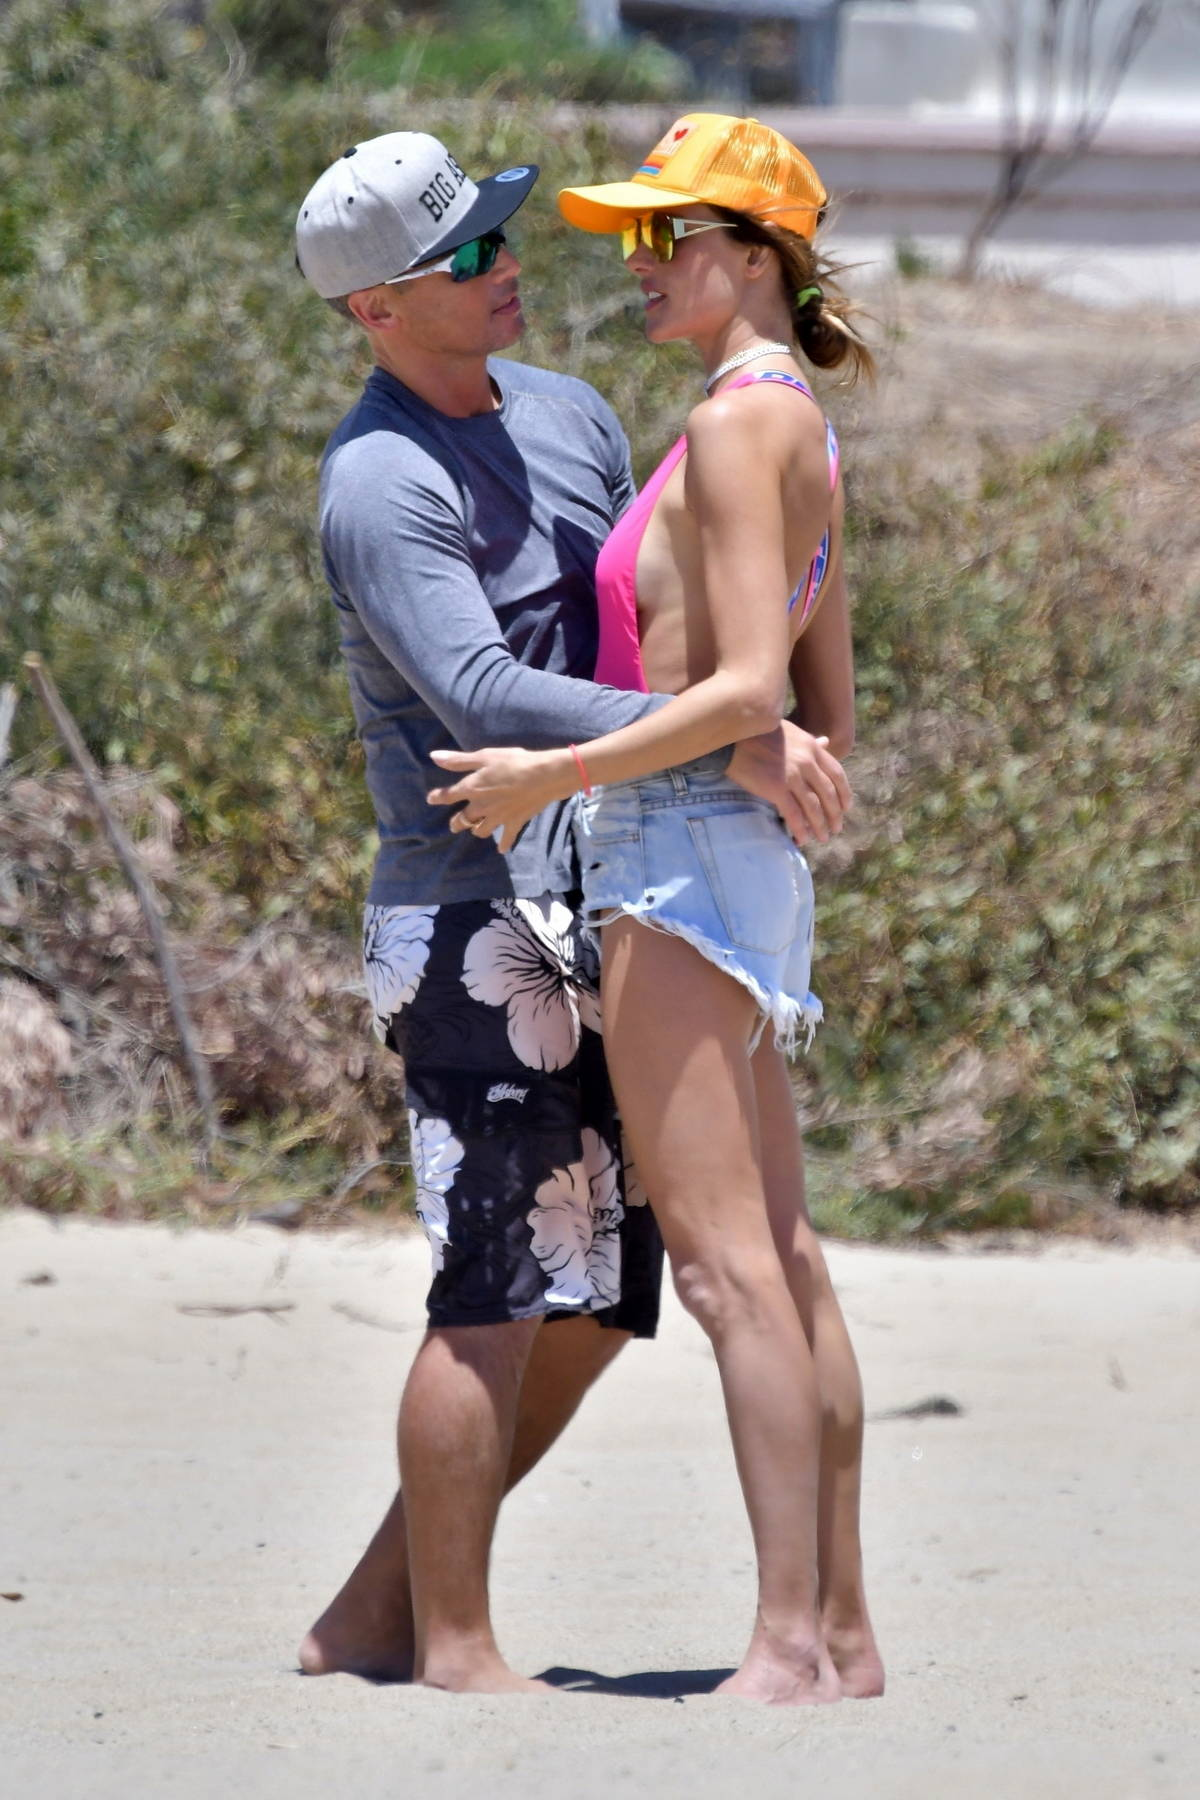 Alessandra Ambrosio packs on the PDA with boyfriend Richard Lee while playing beach volleyball in Santa Monica, California